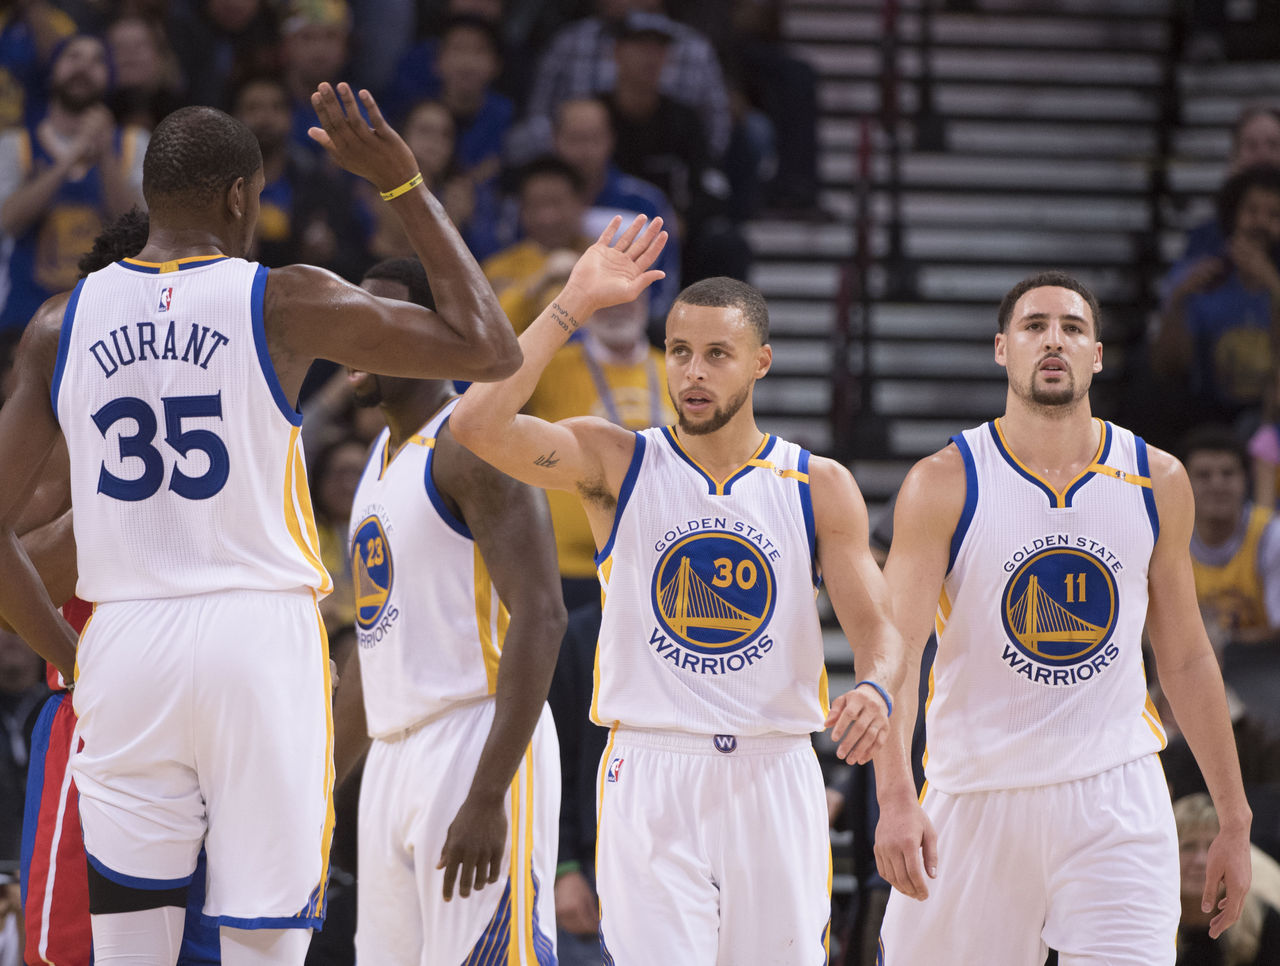 Cropped_2017-01-13t063439z_1549523038_nocid_rtrmadp_3_nba-detroit-pistons-at-golden-state-warriors